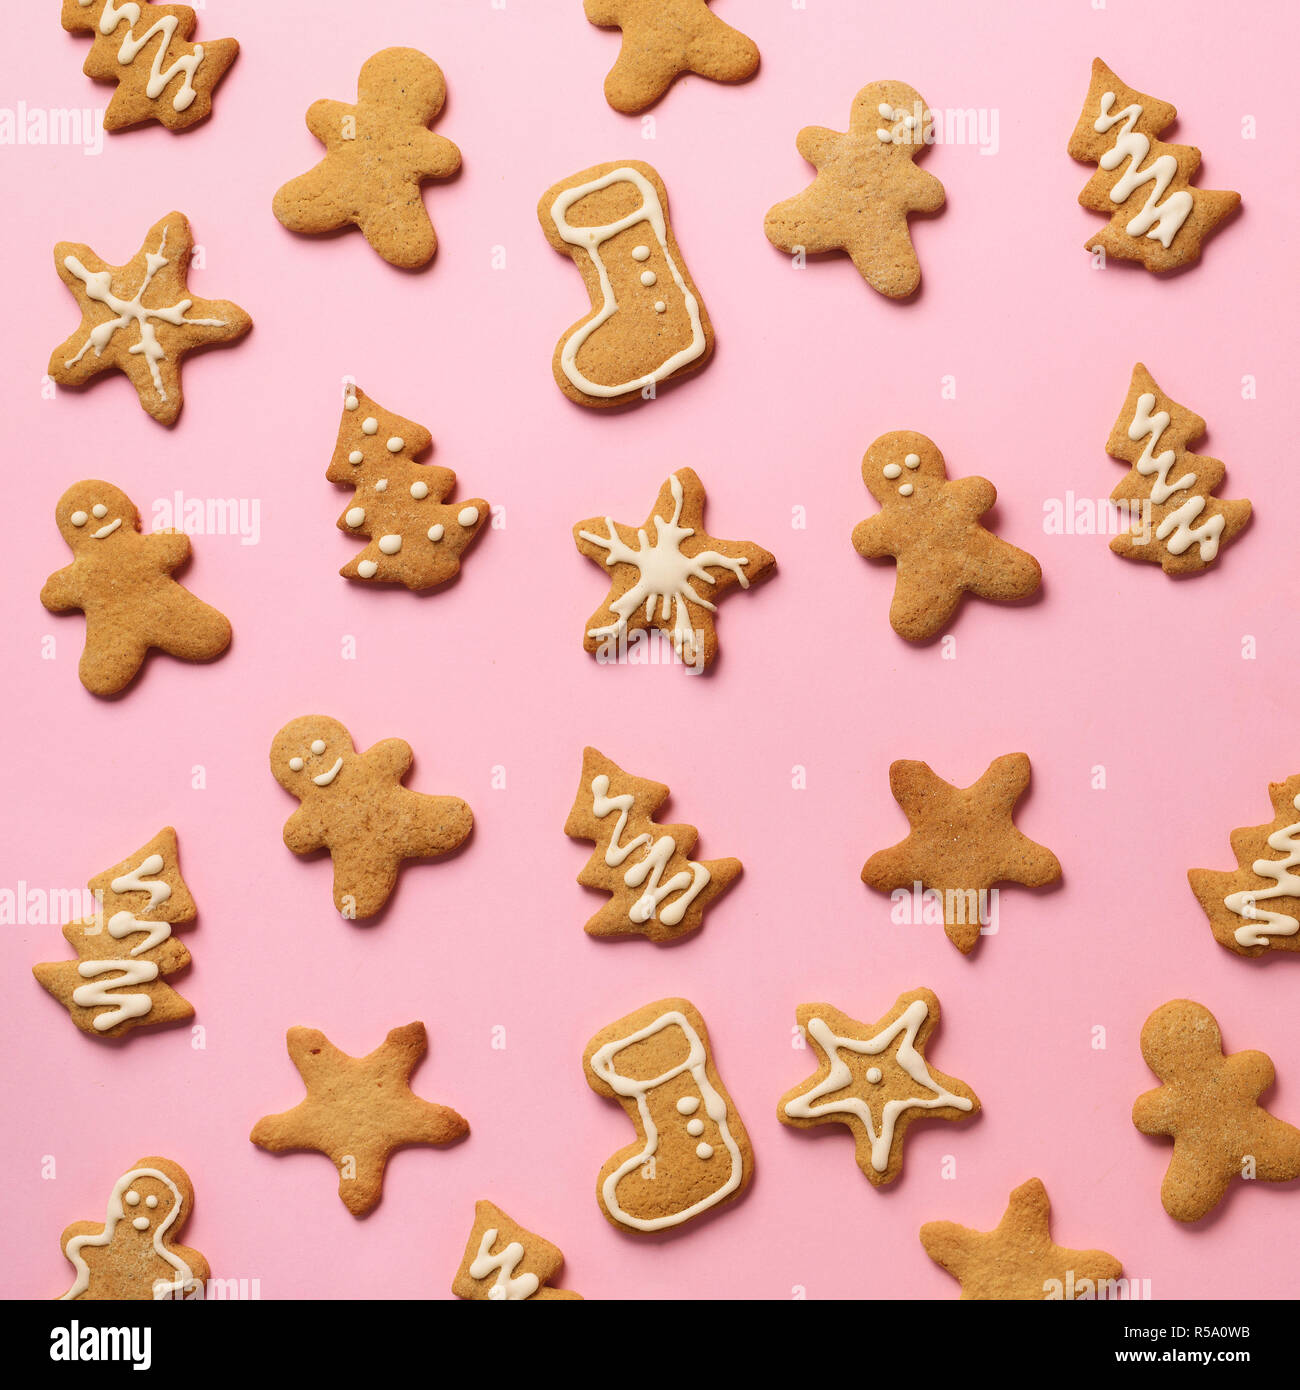 Homemade Christmas Cookies On Pink Background Square Crop Pattern